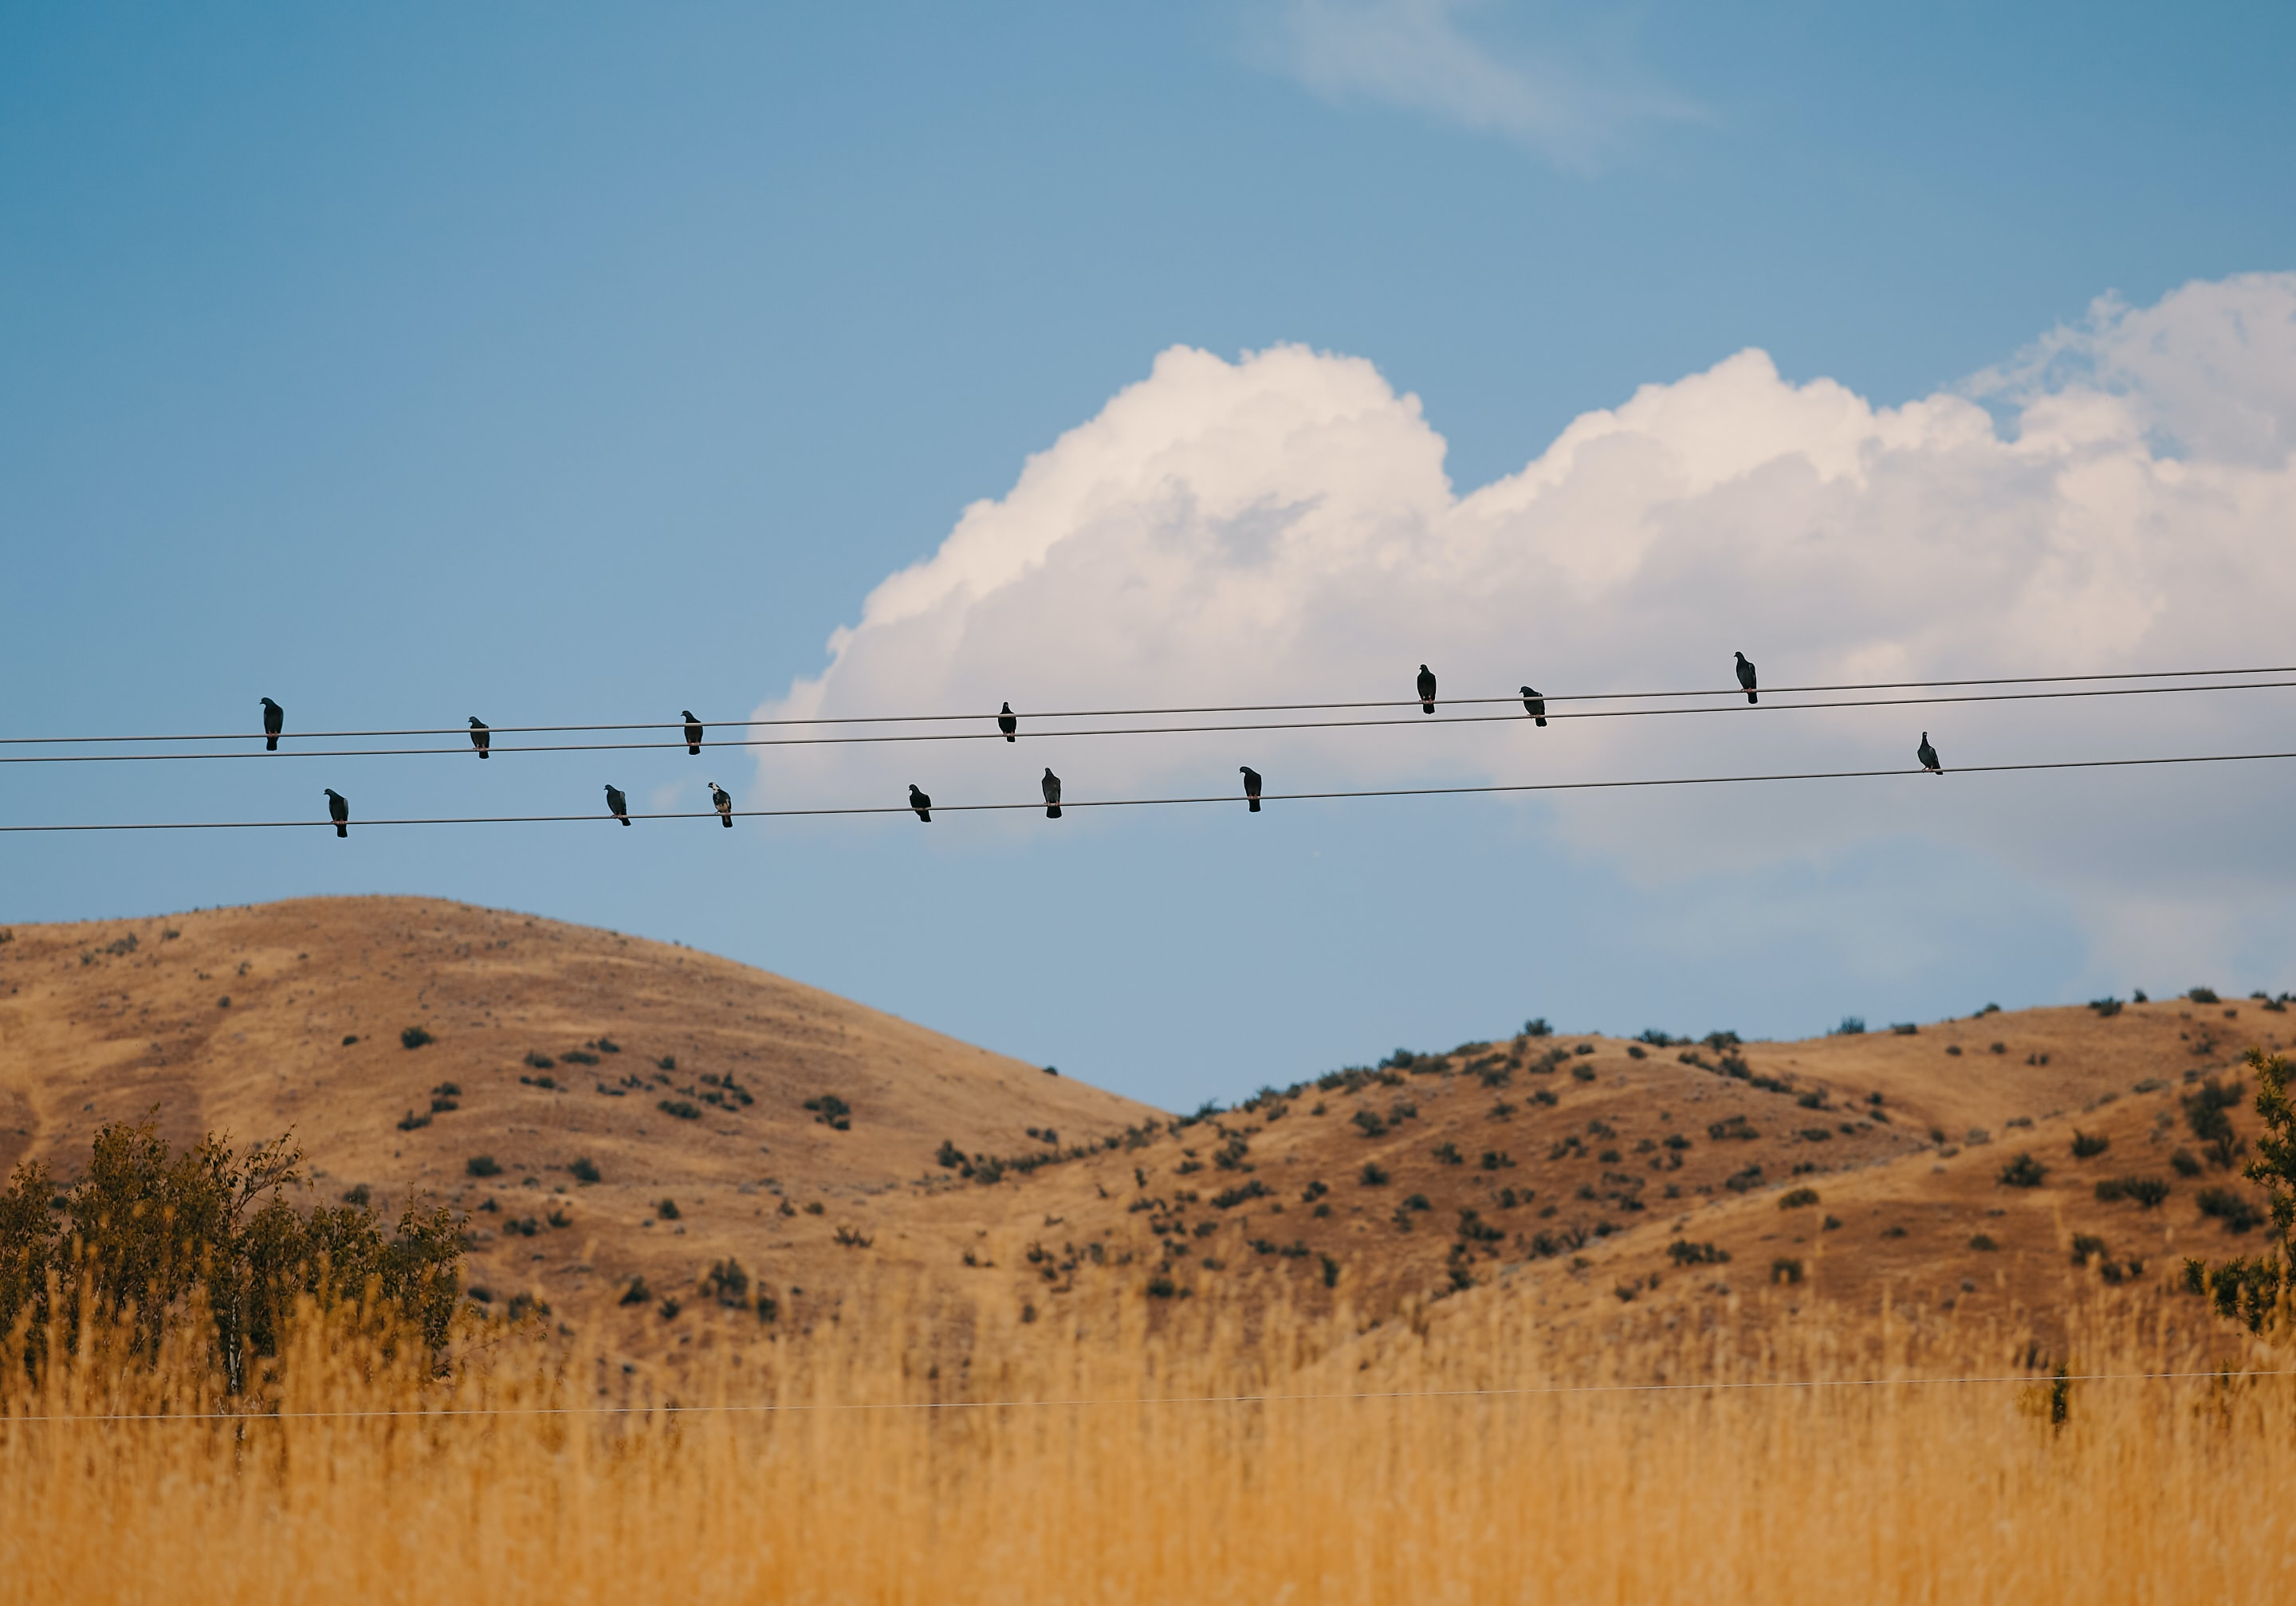 flock of birds sitting on electric cables during daytime